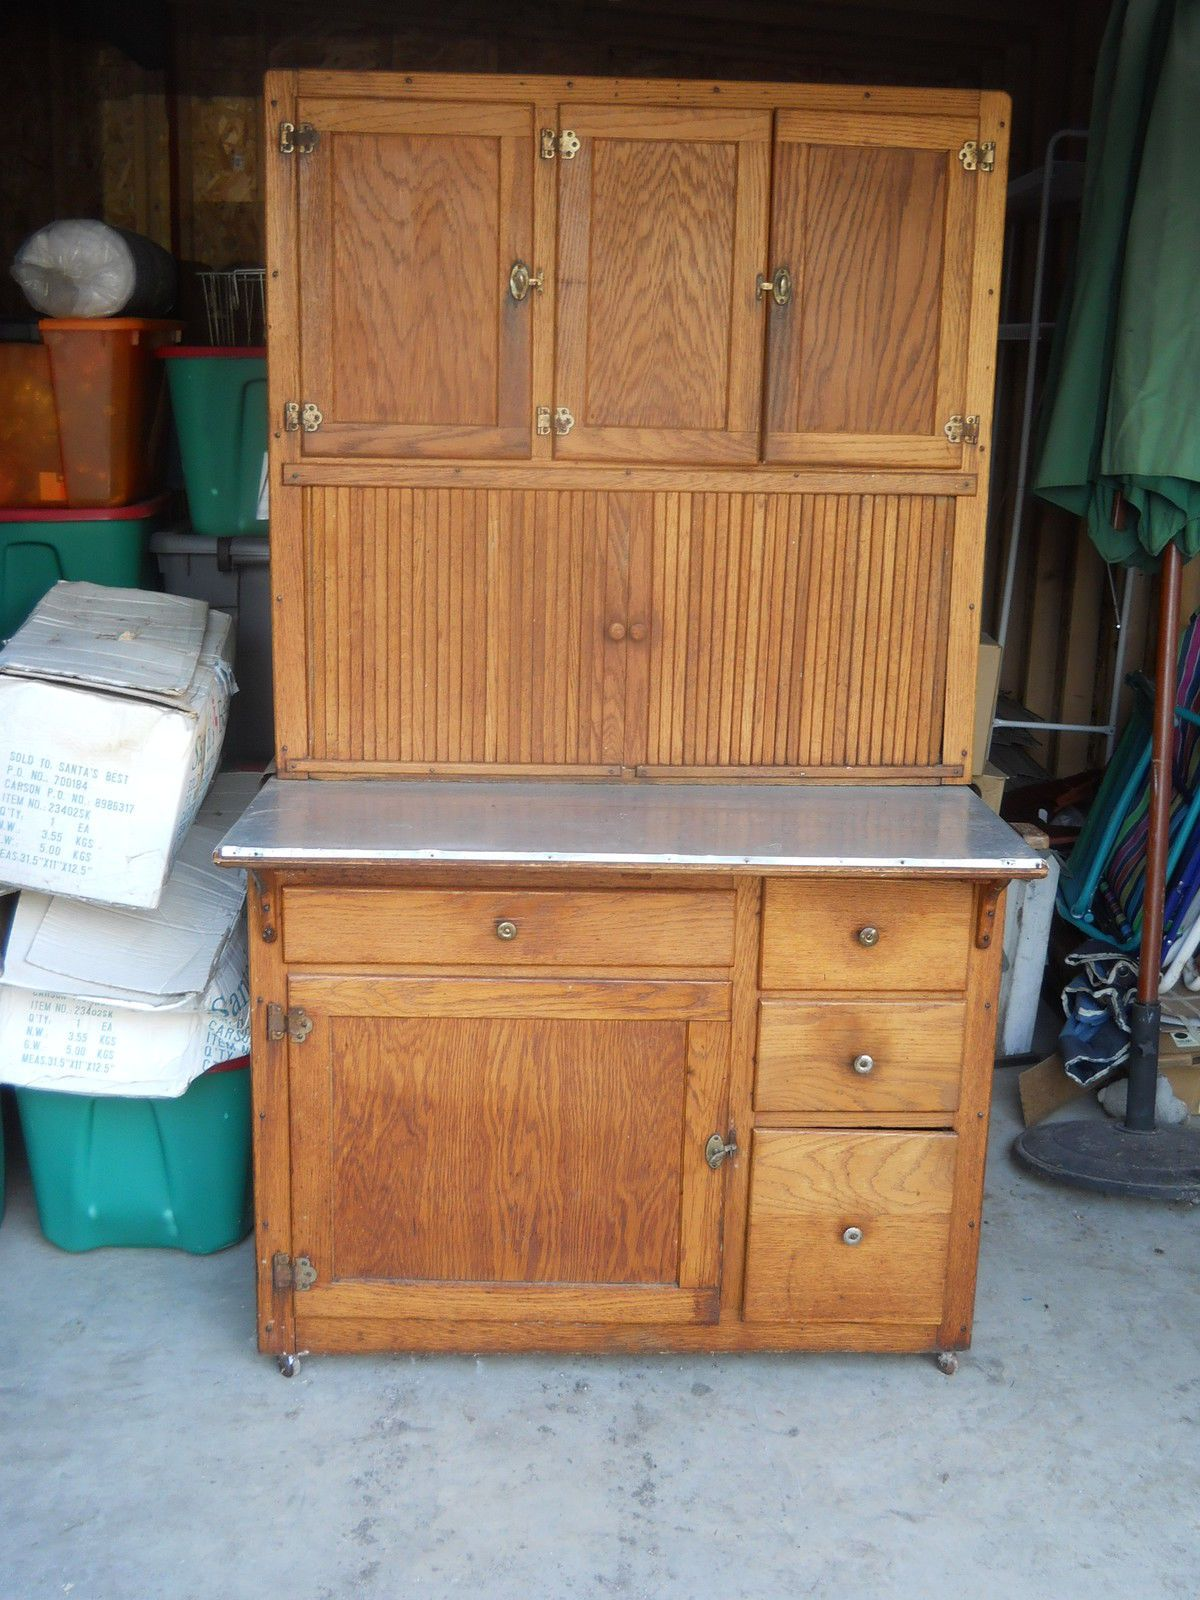 Antique Oak Hoosier Cabinet 42 Inches Wide Located In Illinois Hoosier Cabinet Cabinet Hoosier Cabinets